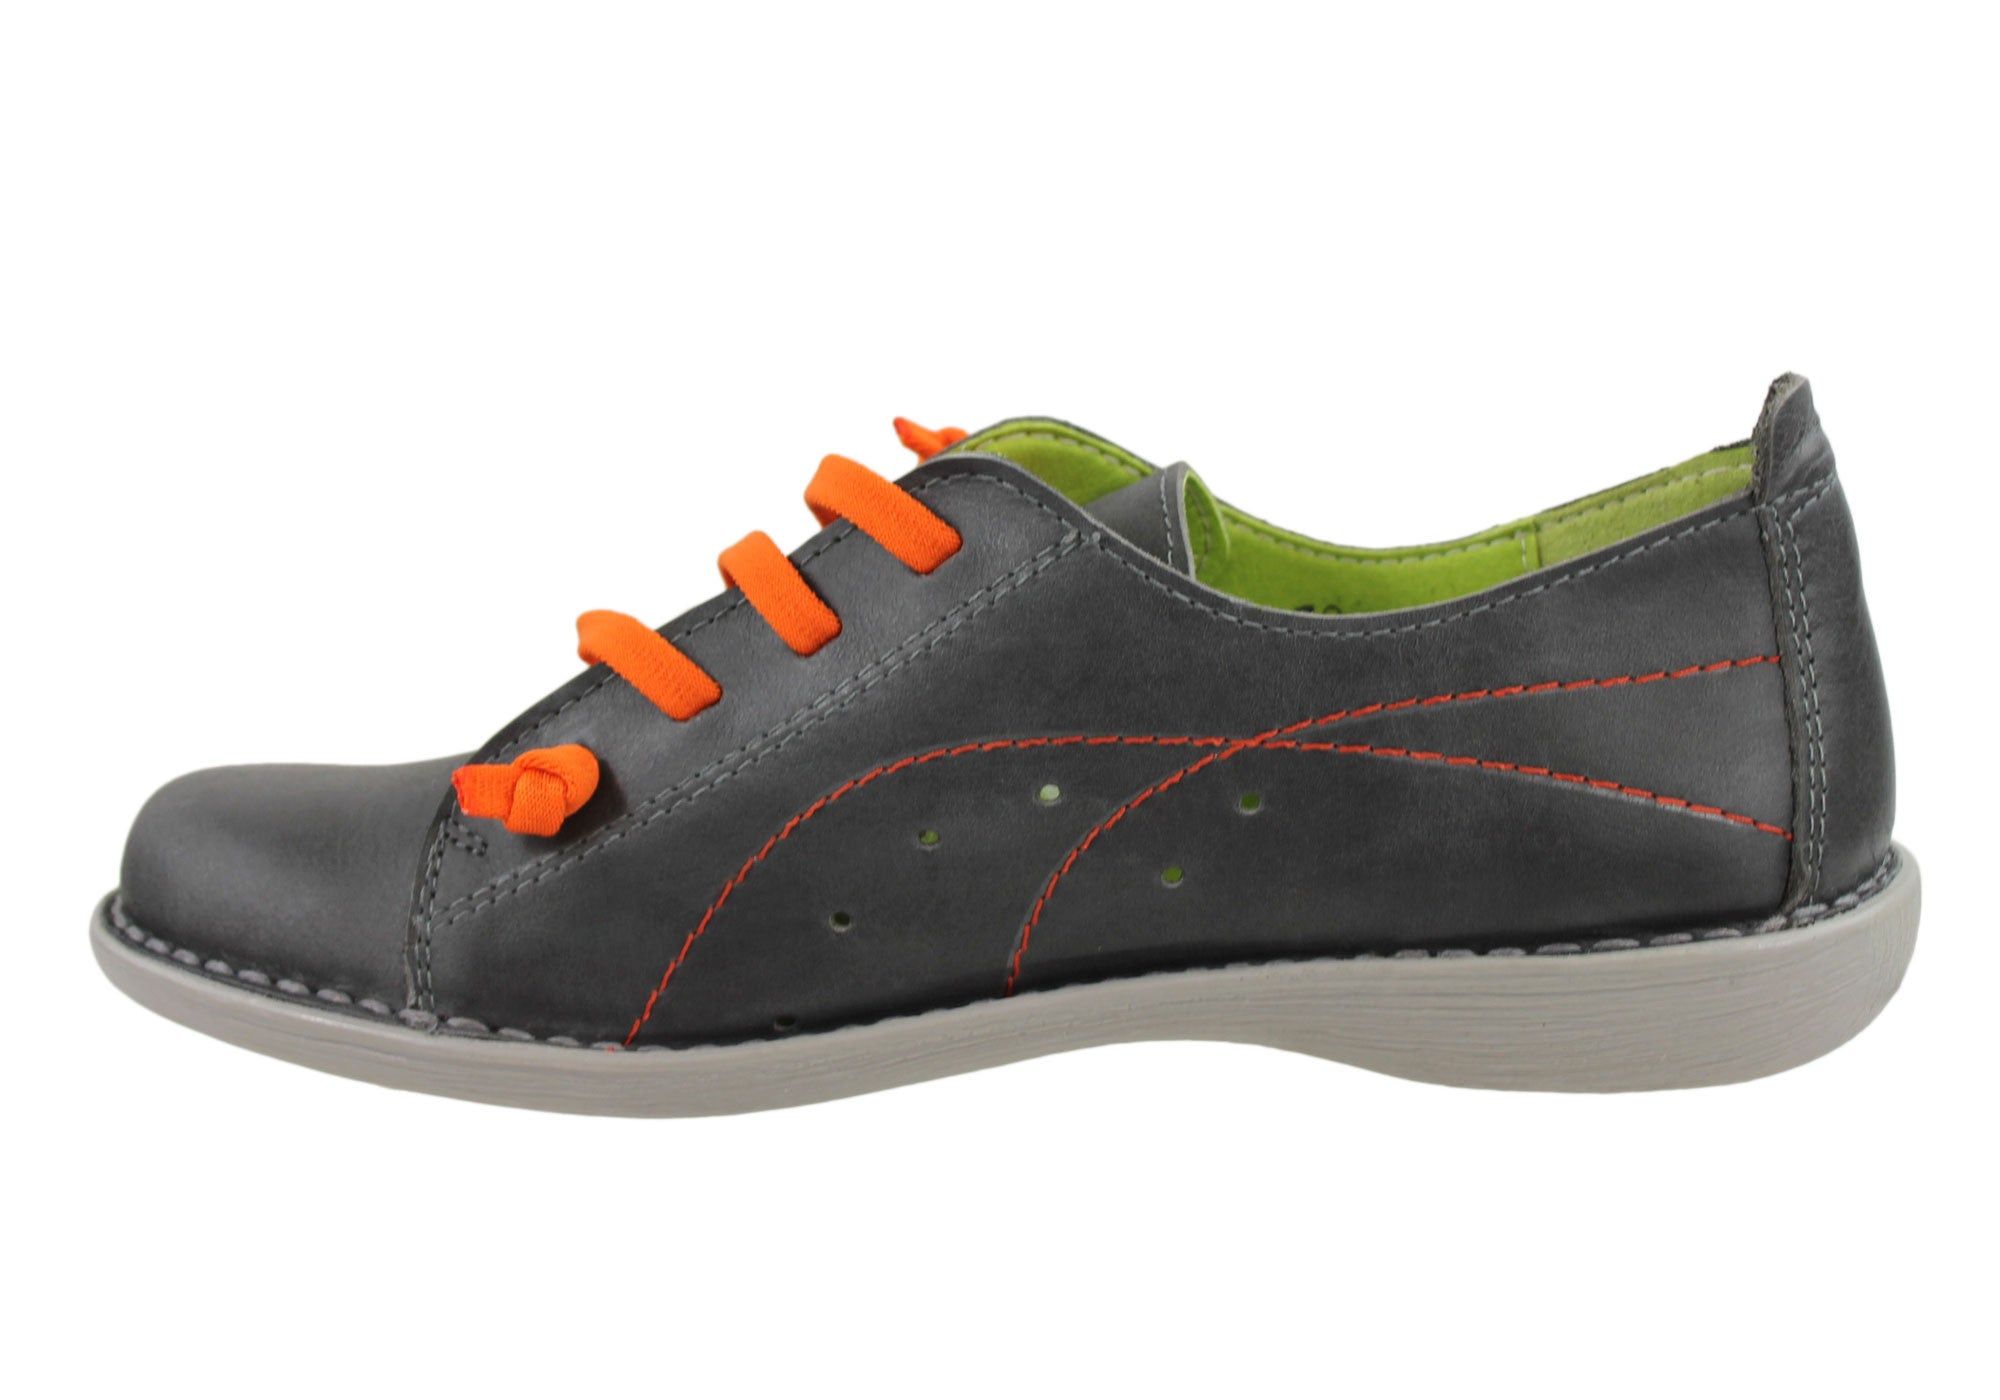 Jungla 6021 Womens Leather Casual Shoes Made In Spain